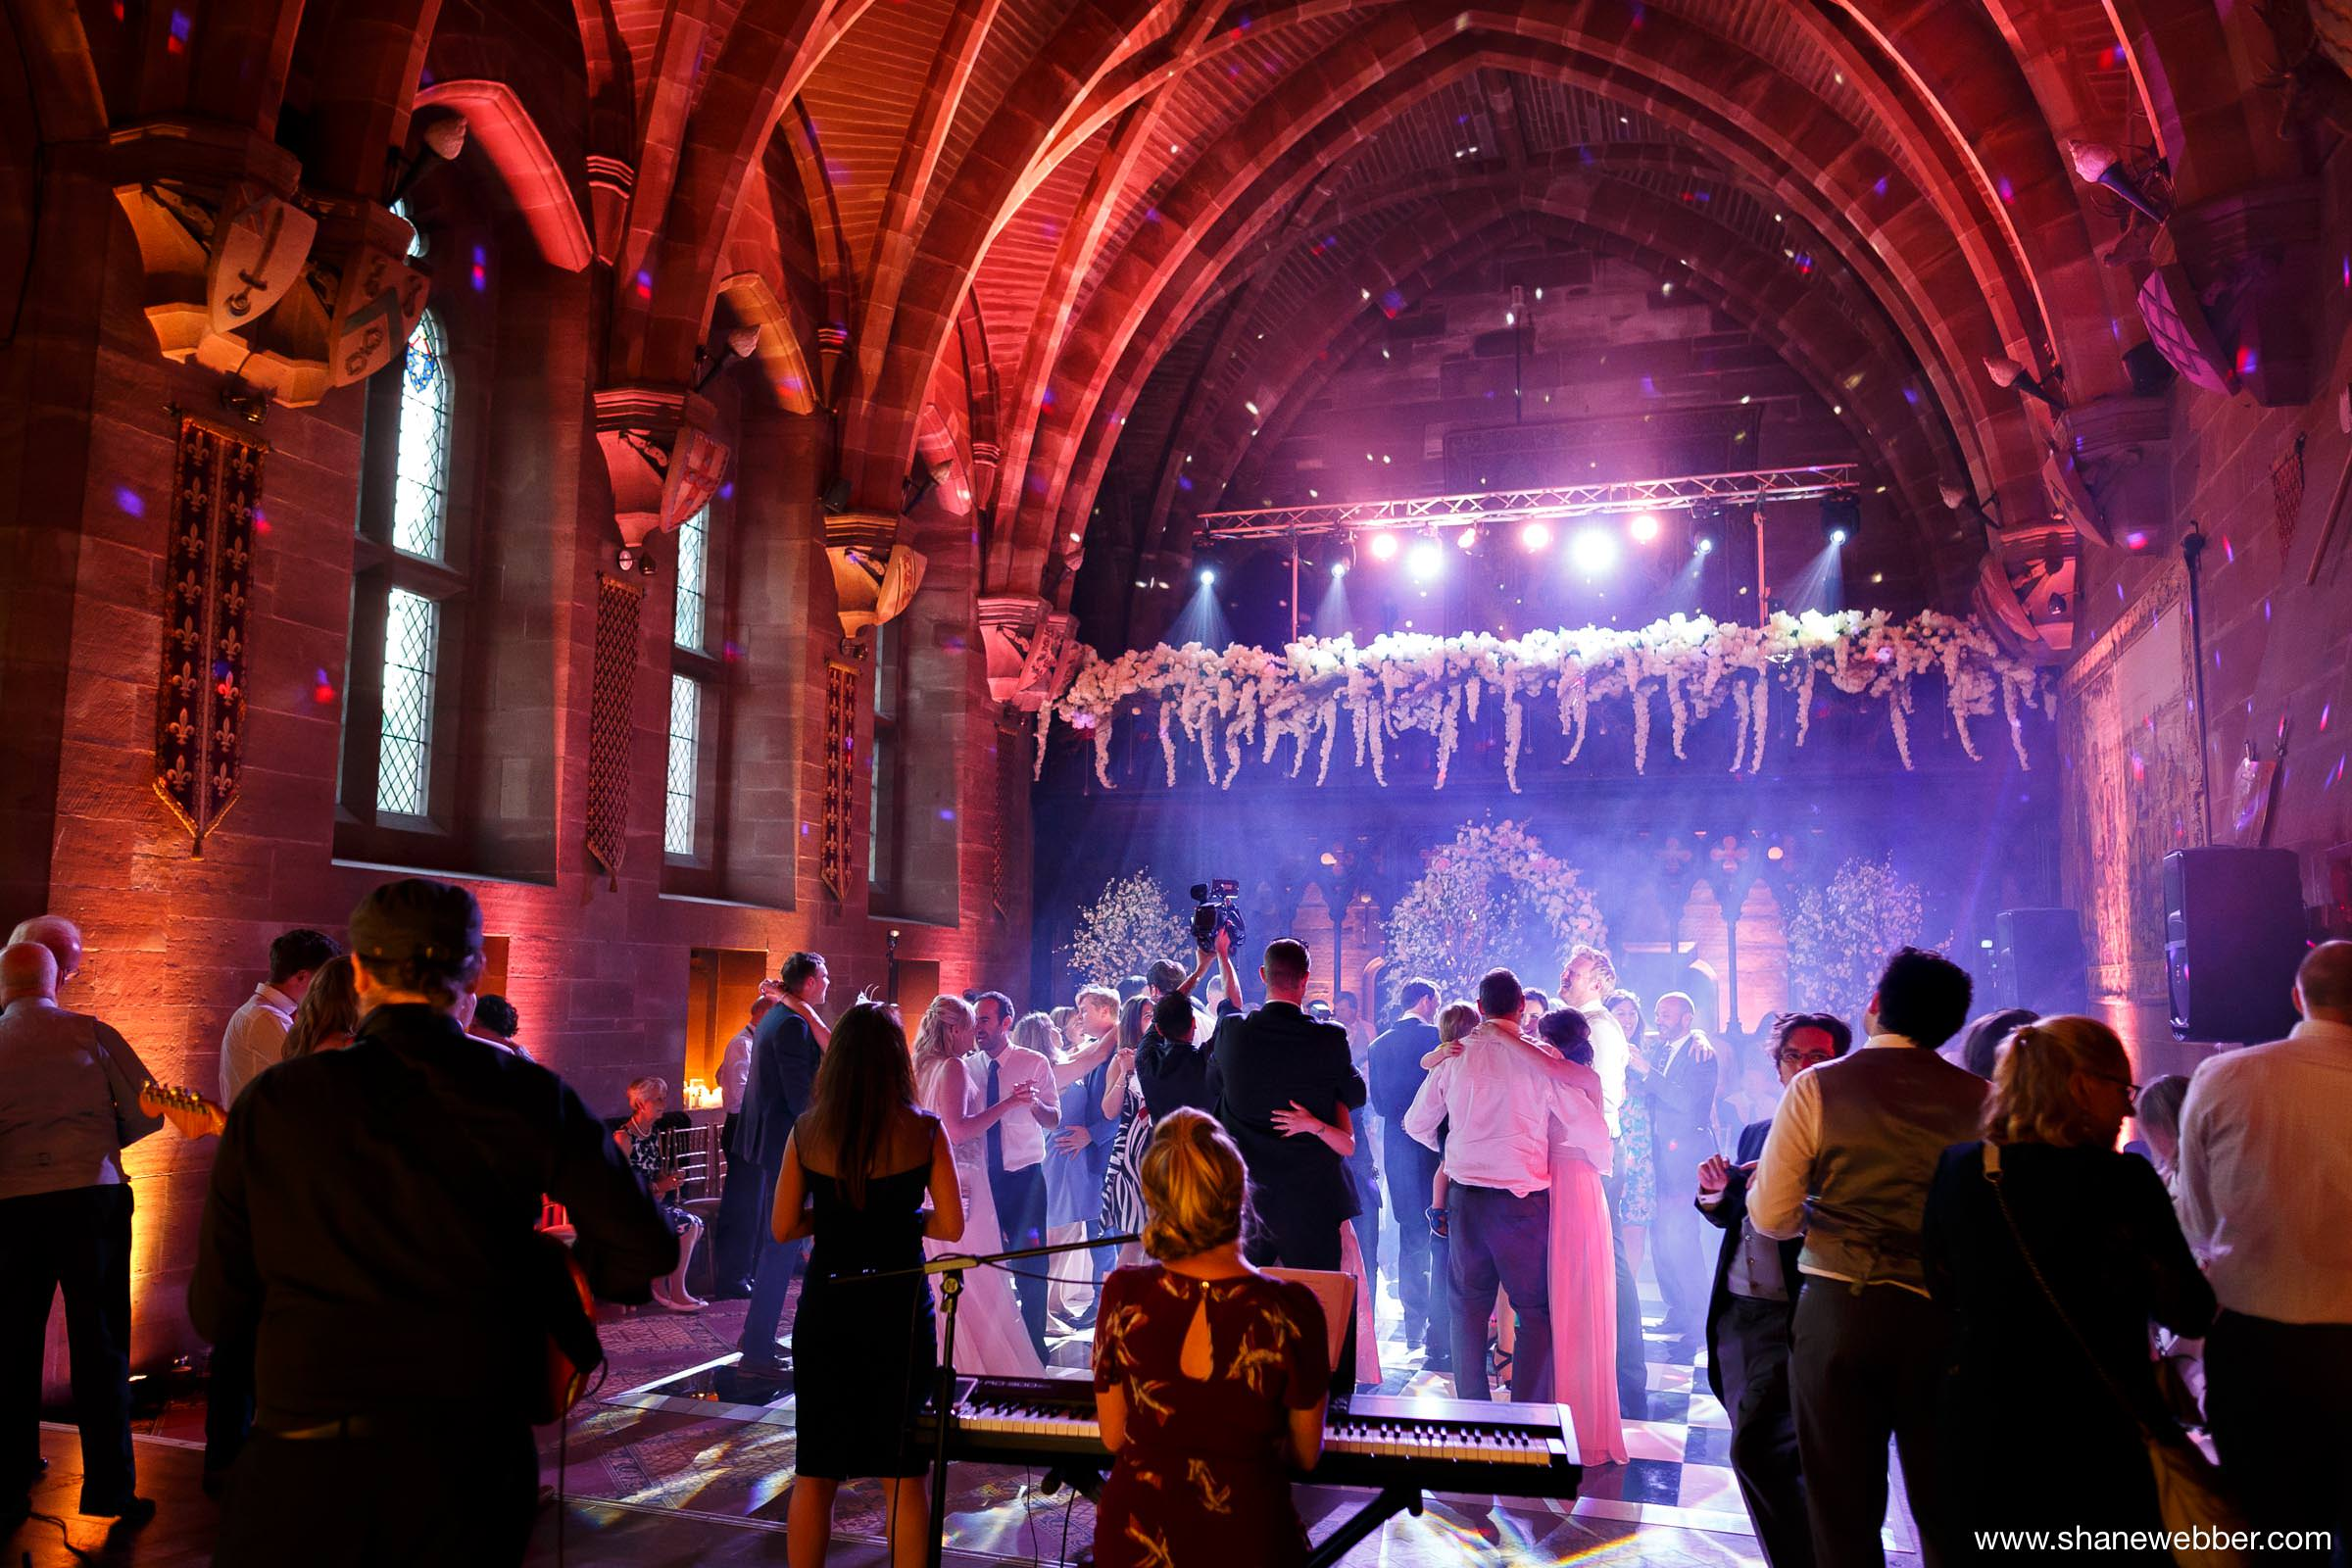 Peckforton Castle wedding reception